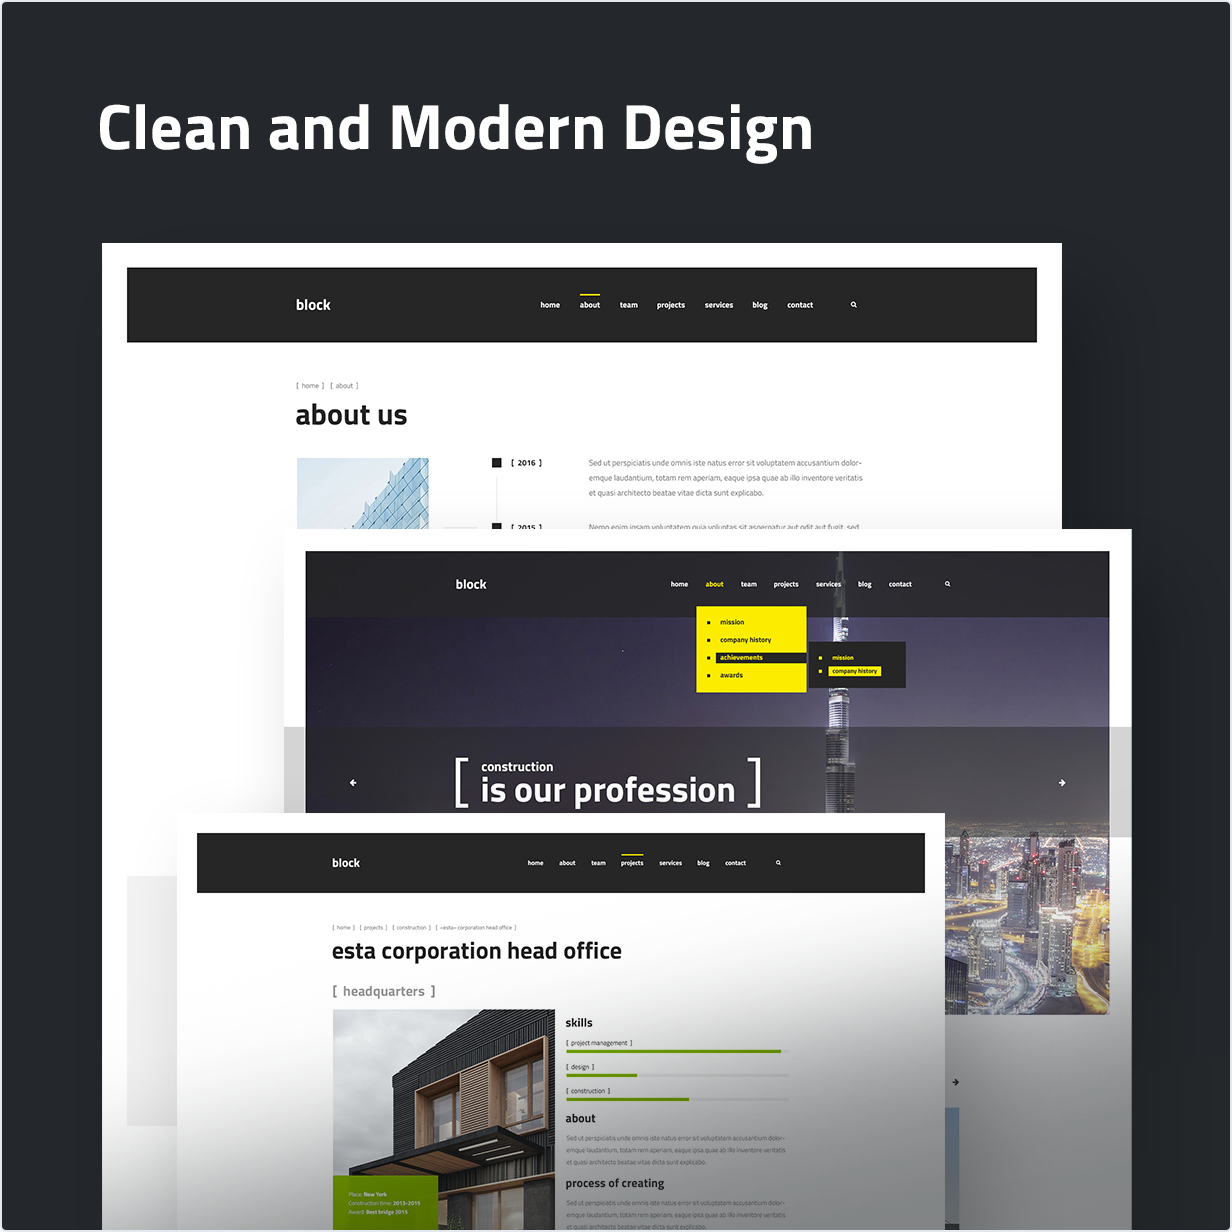 Clean and Modern Design